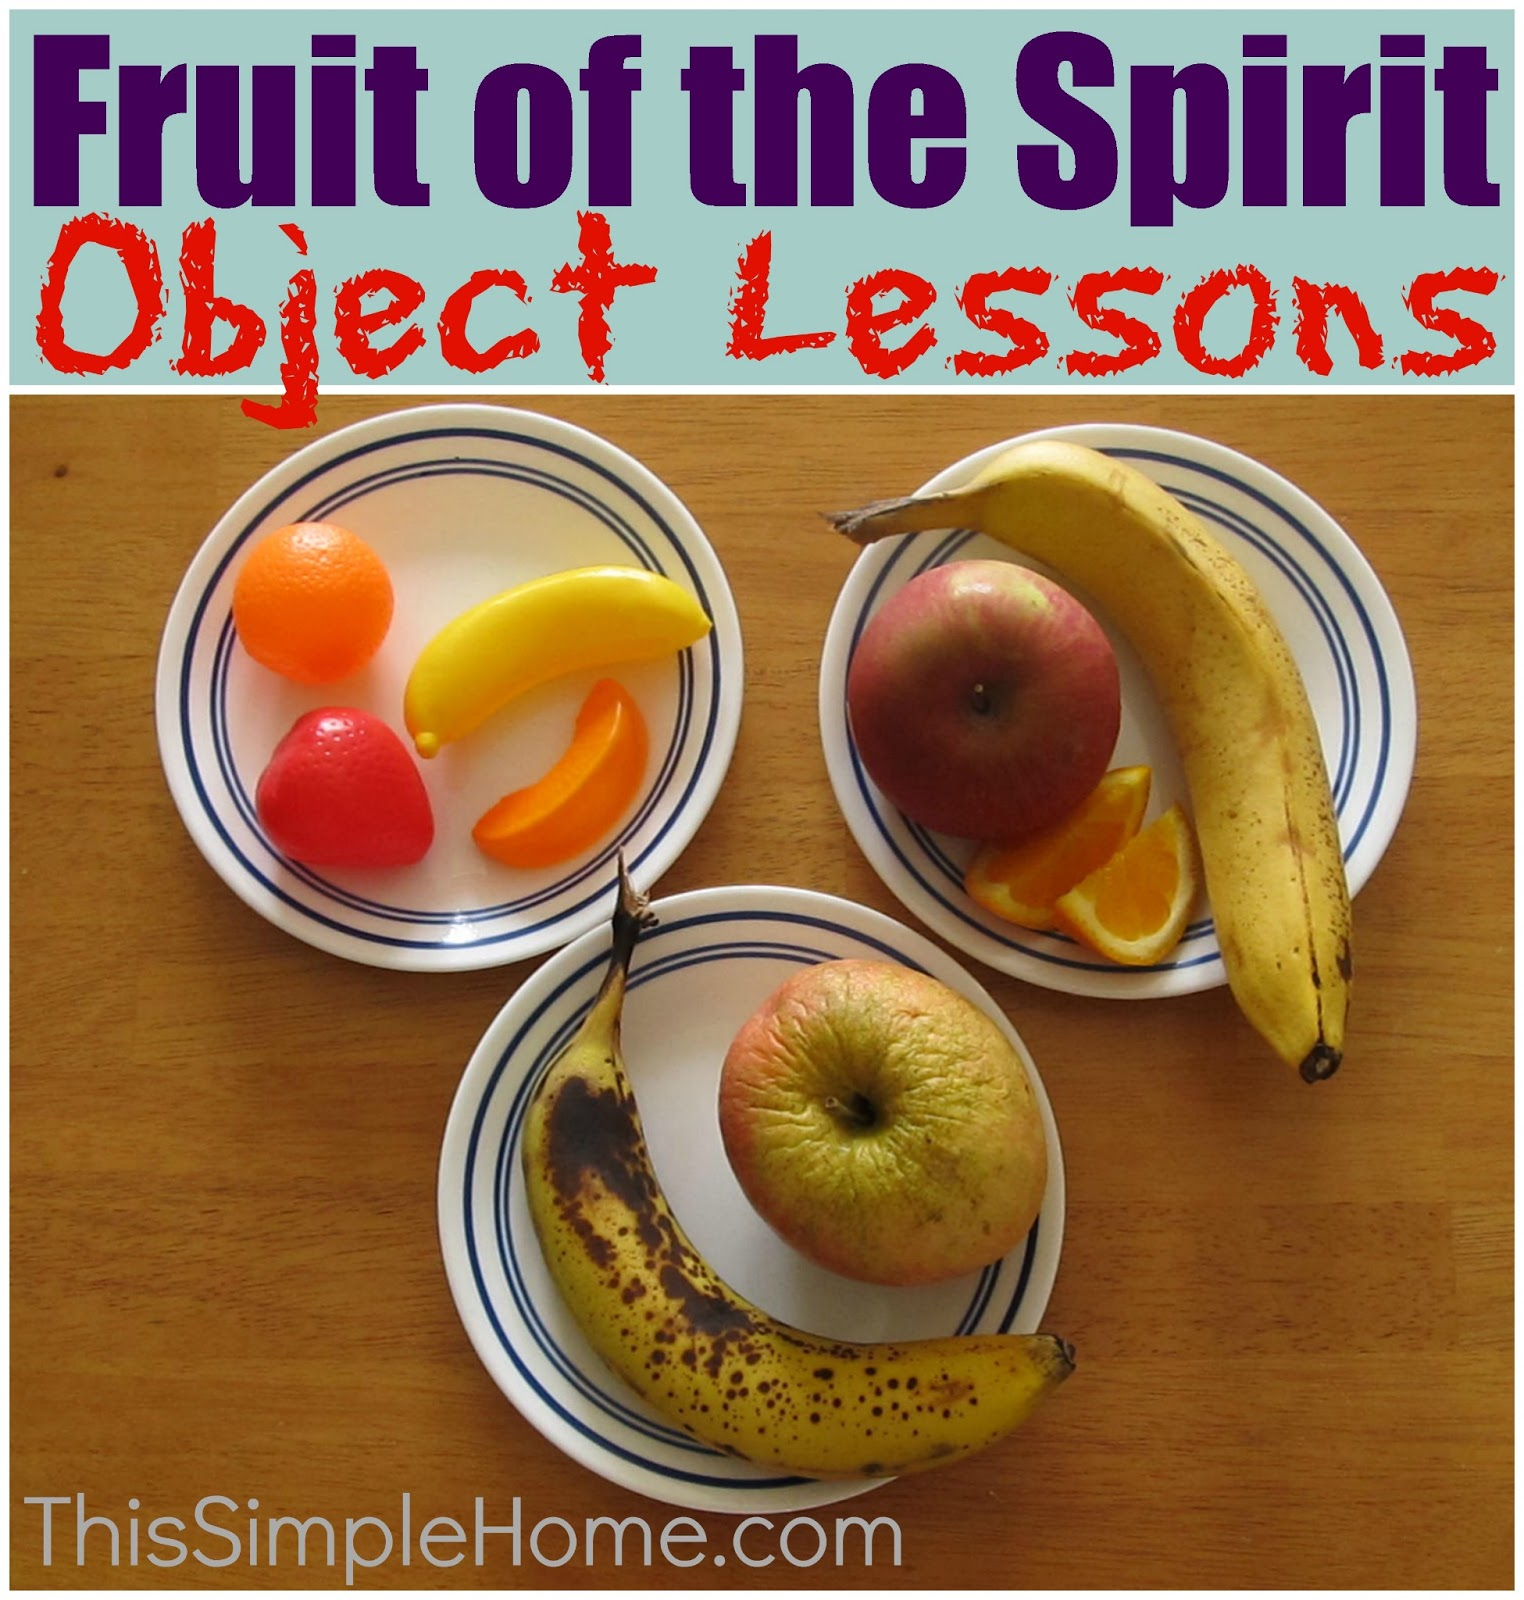 worksheet Fruits And Gifts Of The Holy Spirit Worksheet this simple home fruit of the spirit object lessons and snack snack